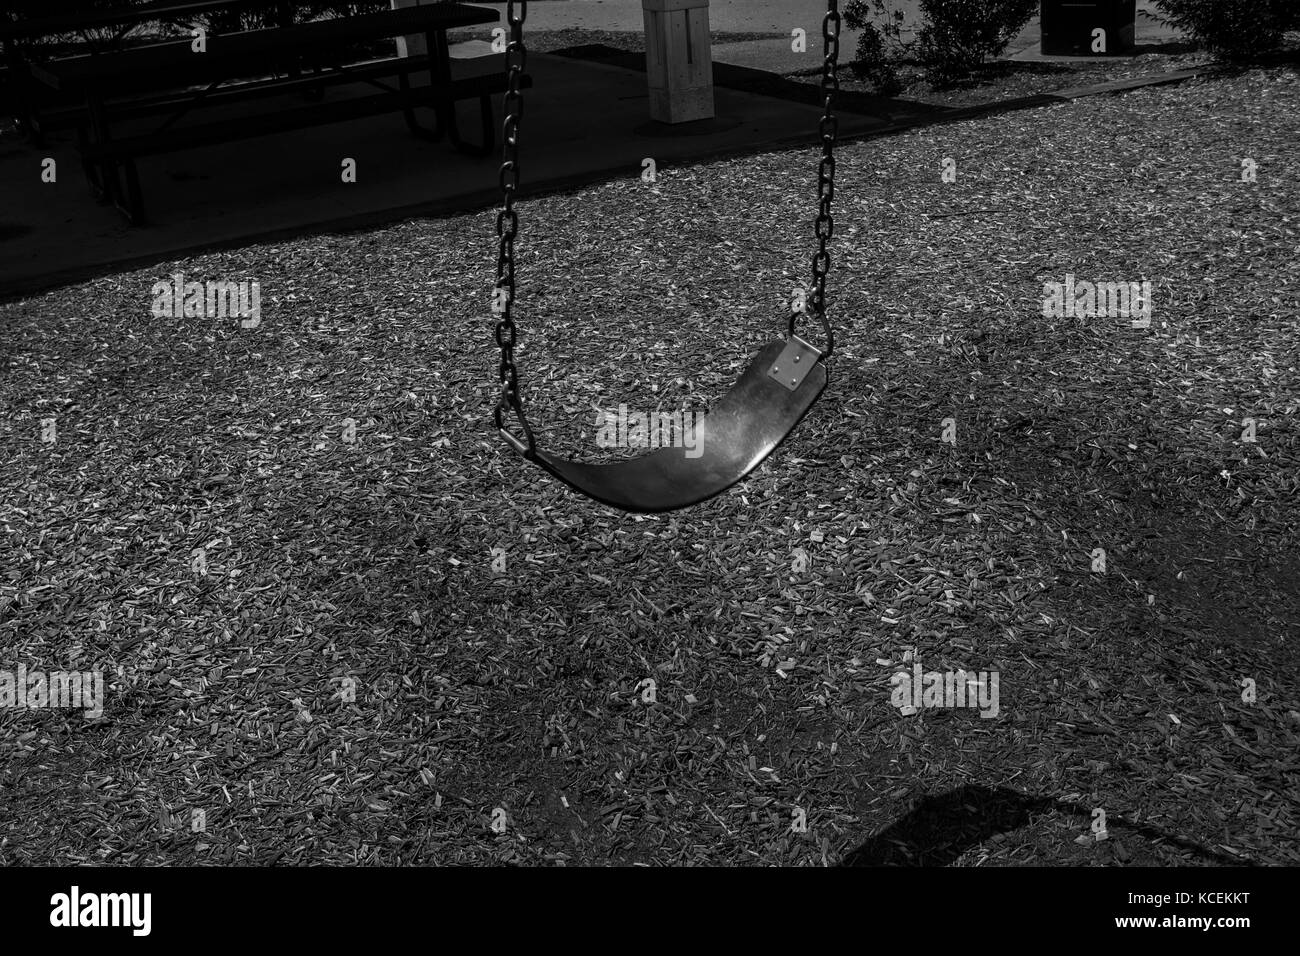 Swing - Stock Image